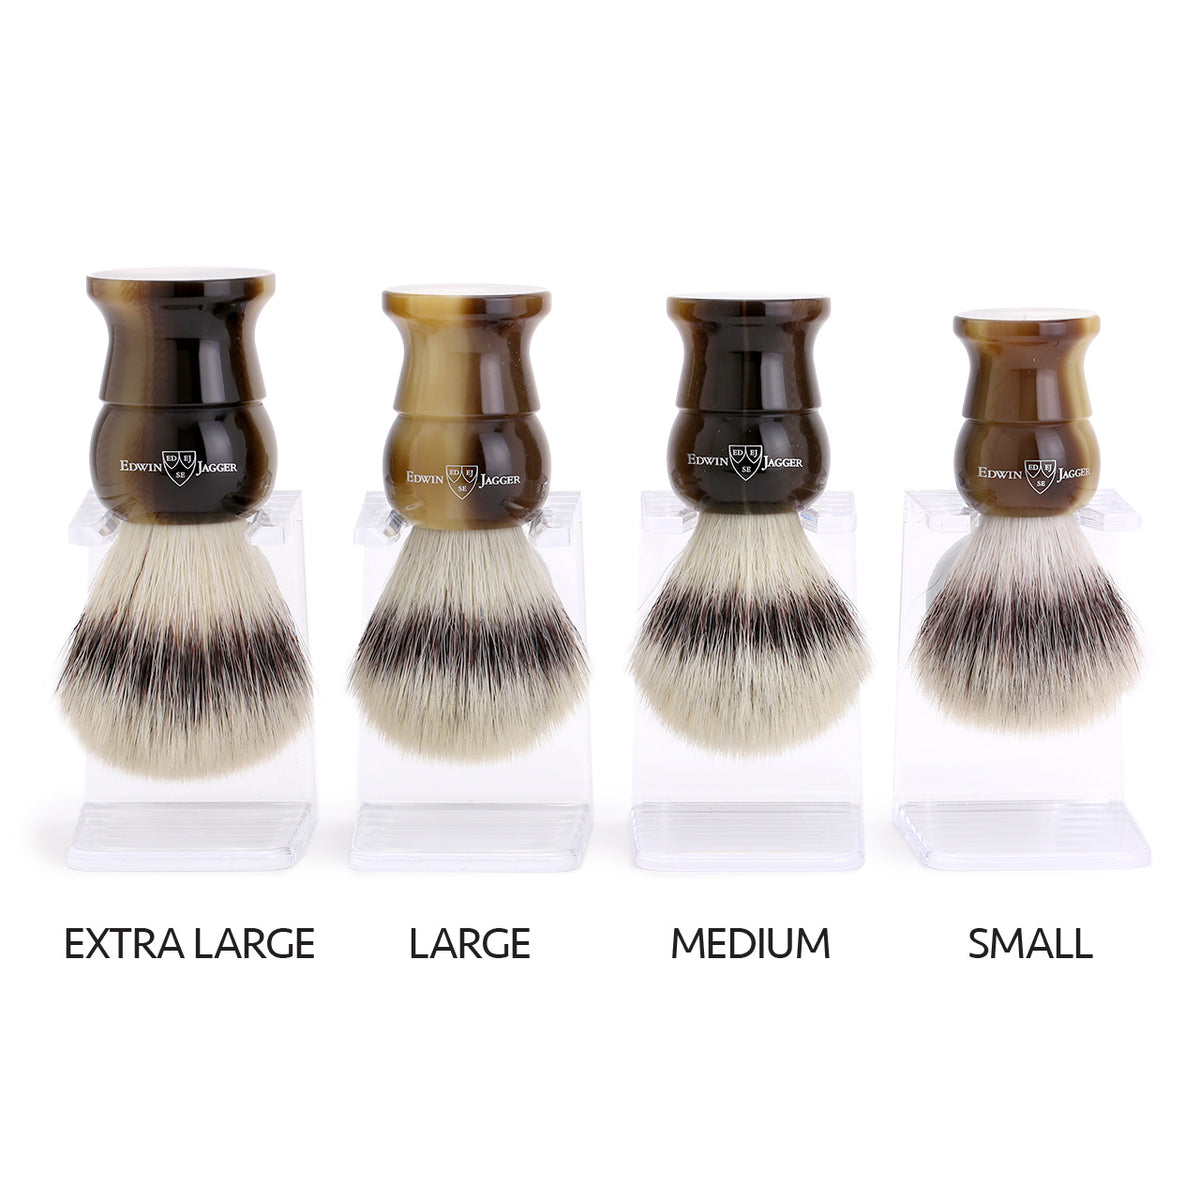 Edwin Jagger Cruelty-Free Horn shaving brushes comparison of 4 sizes